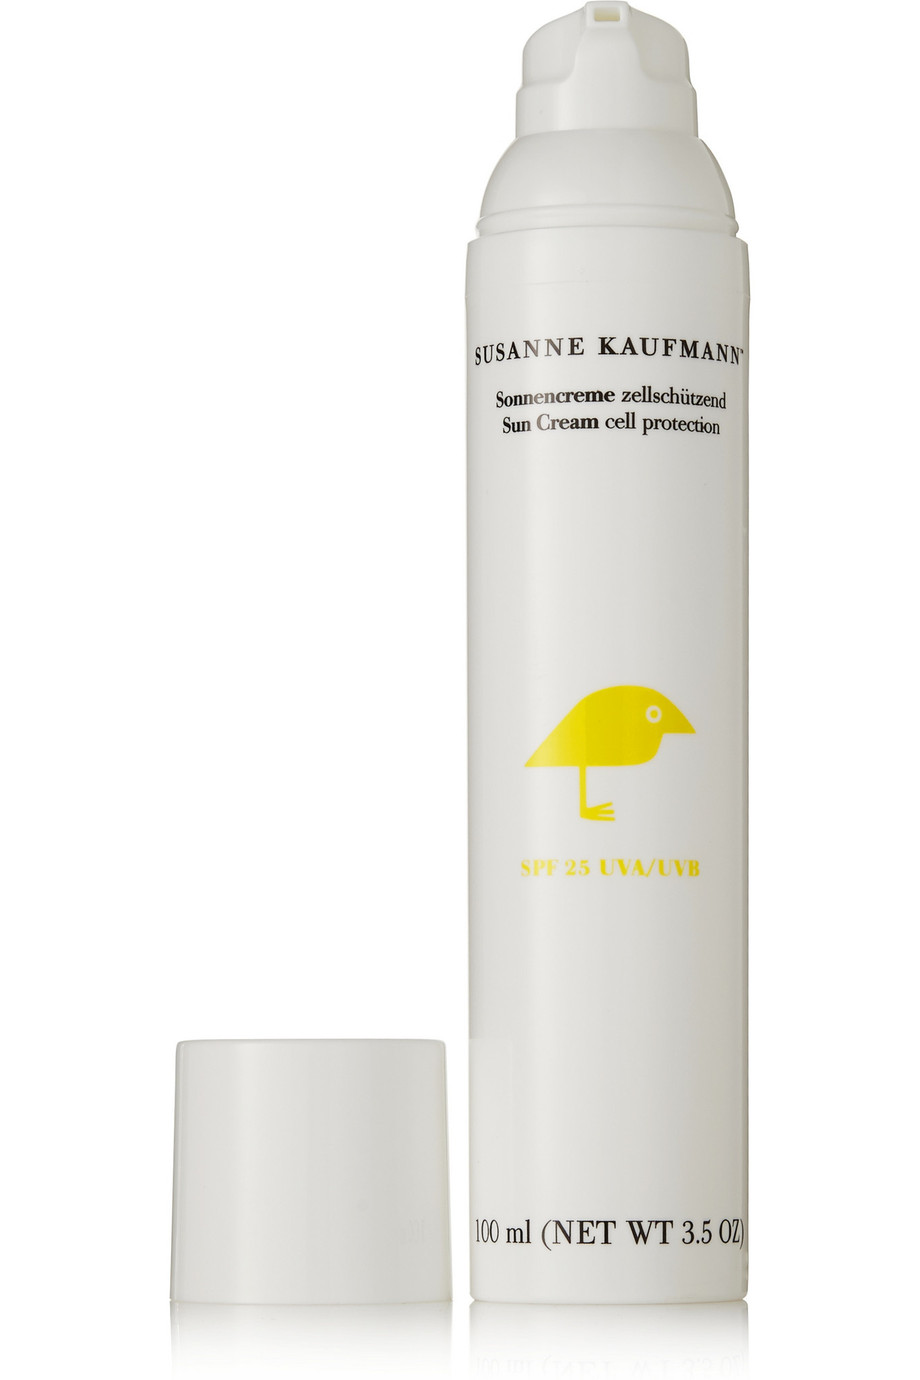 Suzanne Kaufmann Face Broad Spectrum Protection Sunscreen SPF 30 £54.00 from Net-a-Porter   Waterproof, Anti-ageing and smells like strawberries - a summer essential!